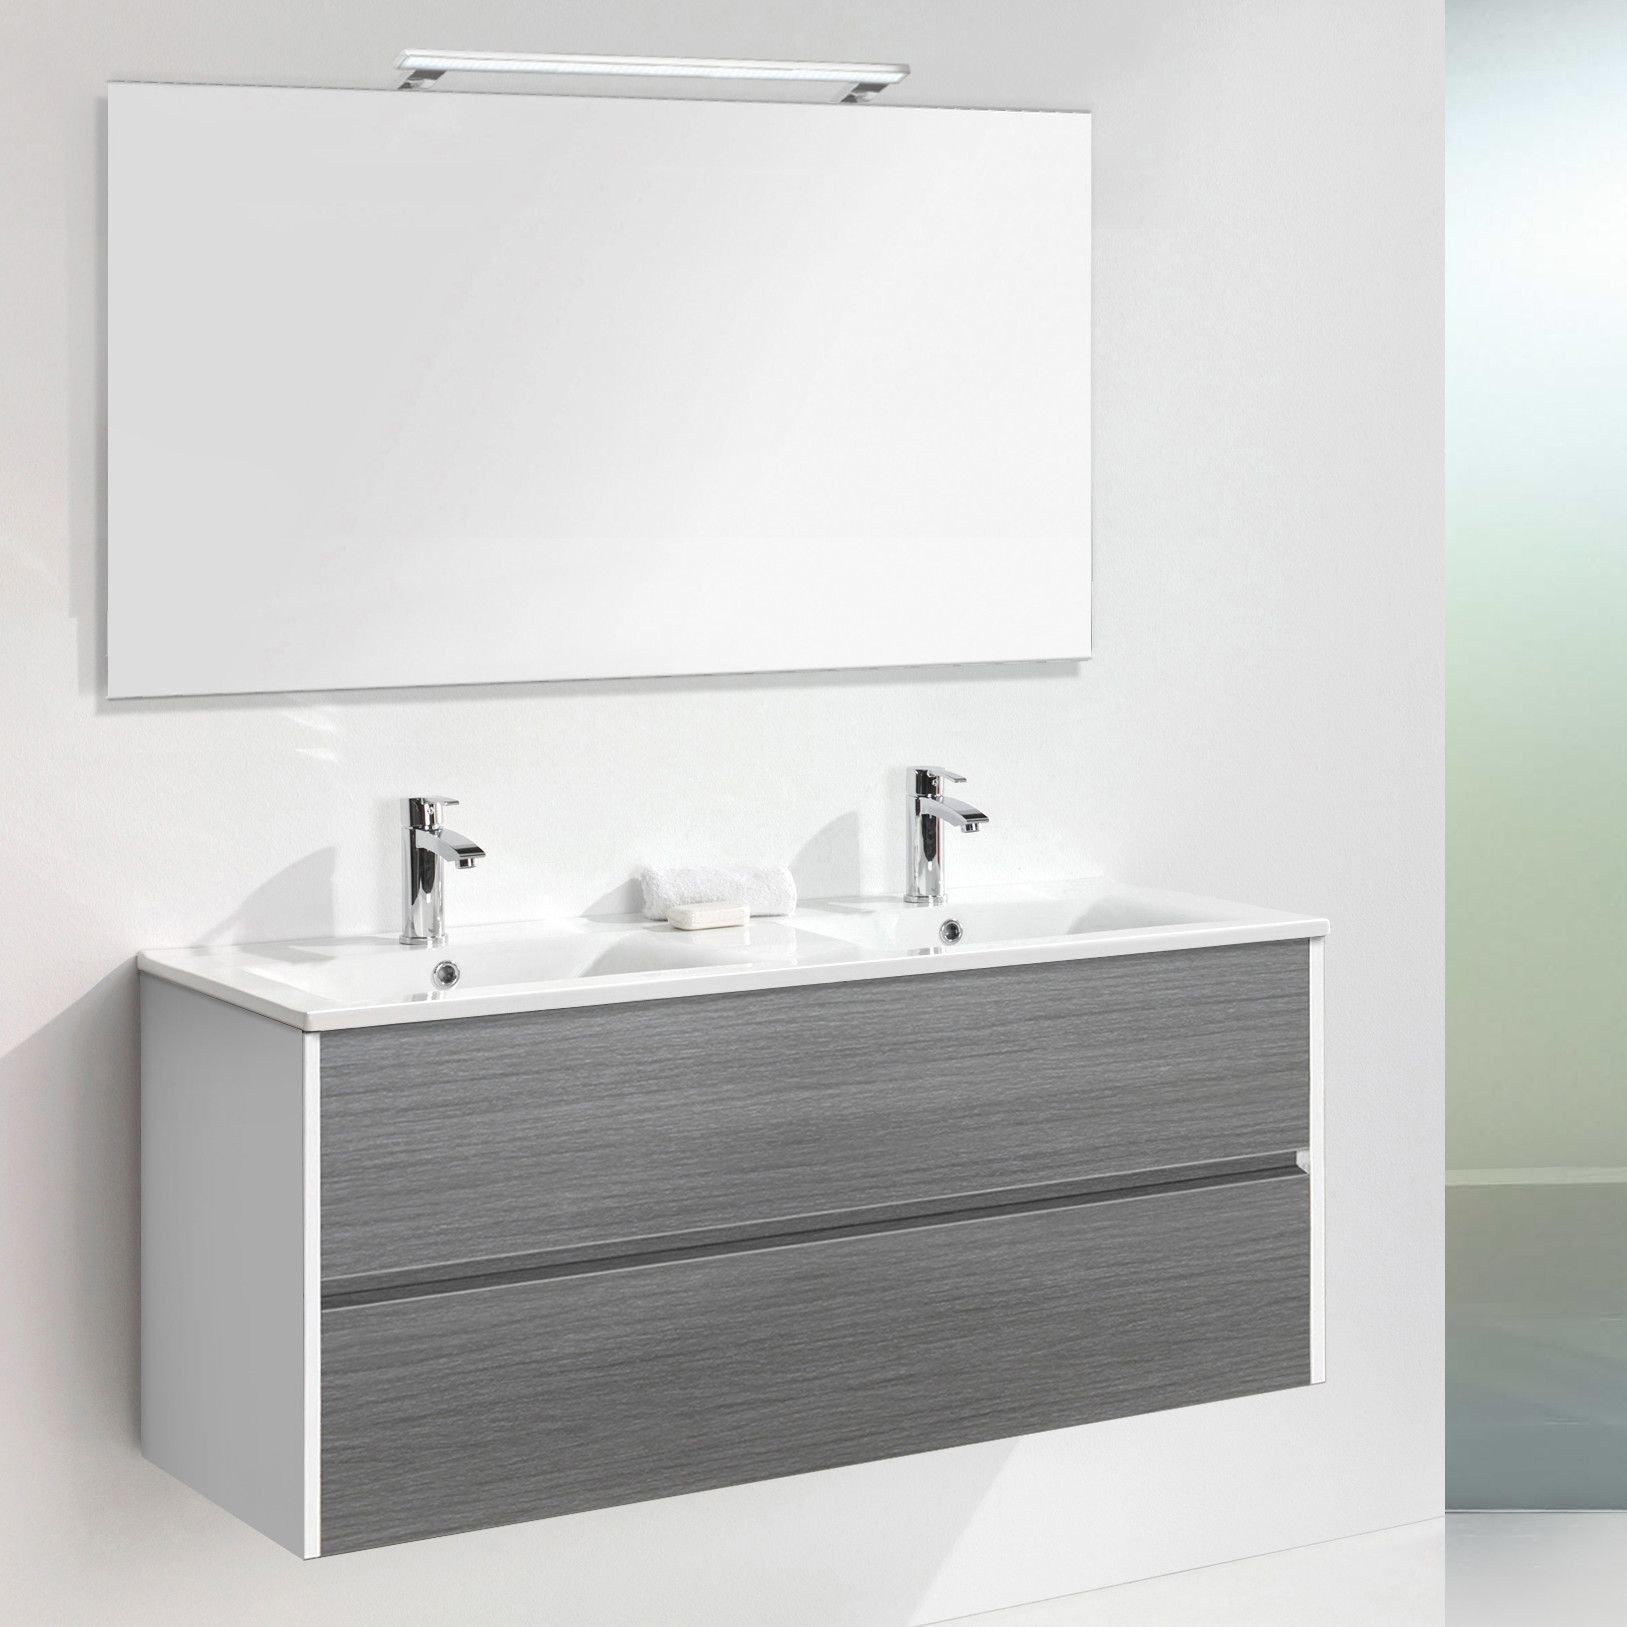 Mirrored Bathroom Cabinets Uk Daugava 120cm Wall Mounted Double Basin Vanity Unit With Mirror